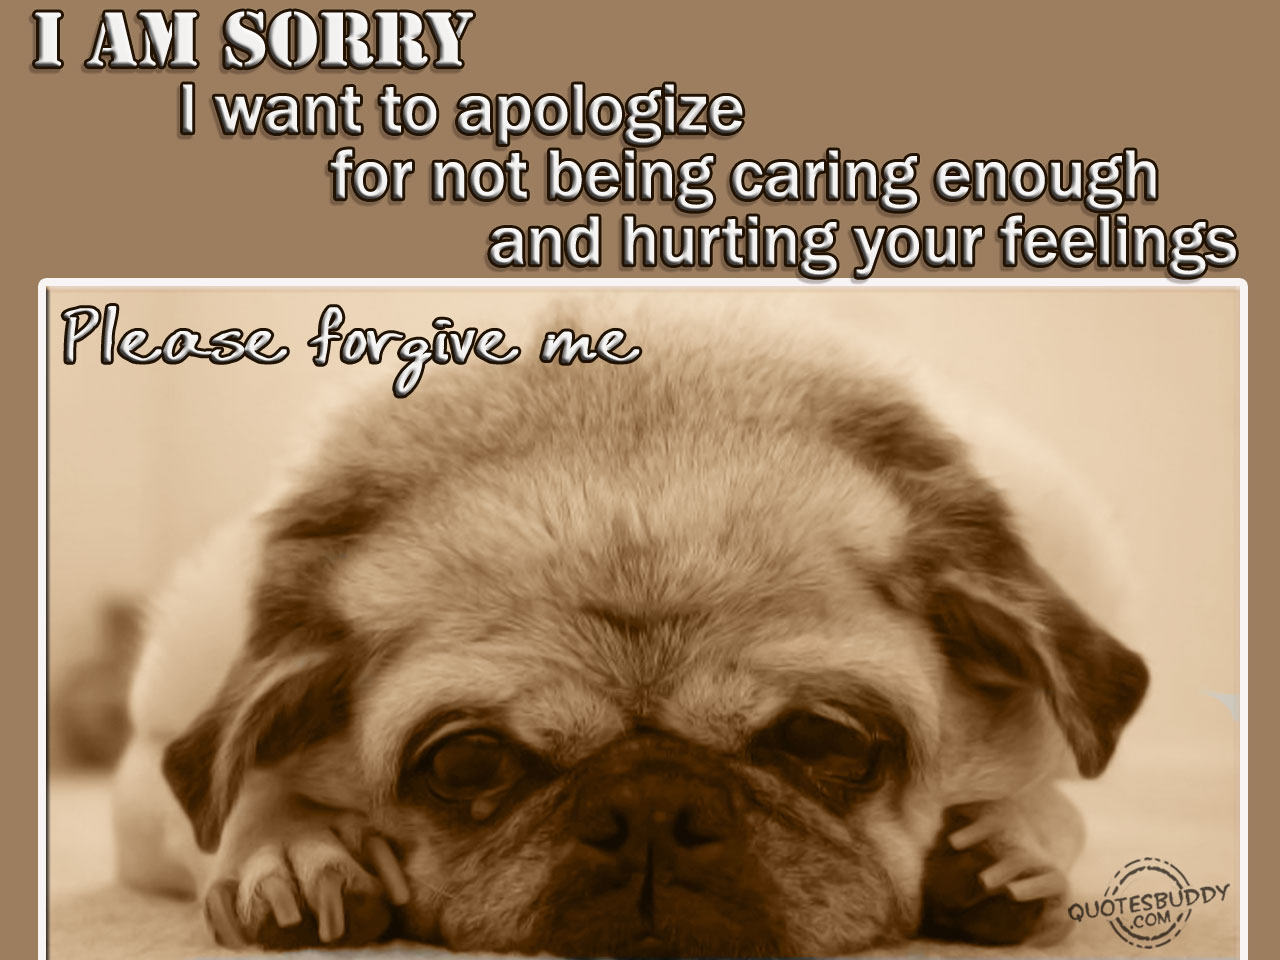 I Am Sorry I Want To Apologize For Not Being Caring Enough And Hurting Your Feelings ~ Aplology Quotes